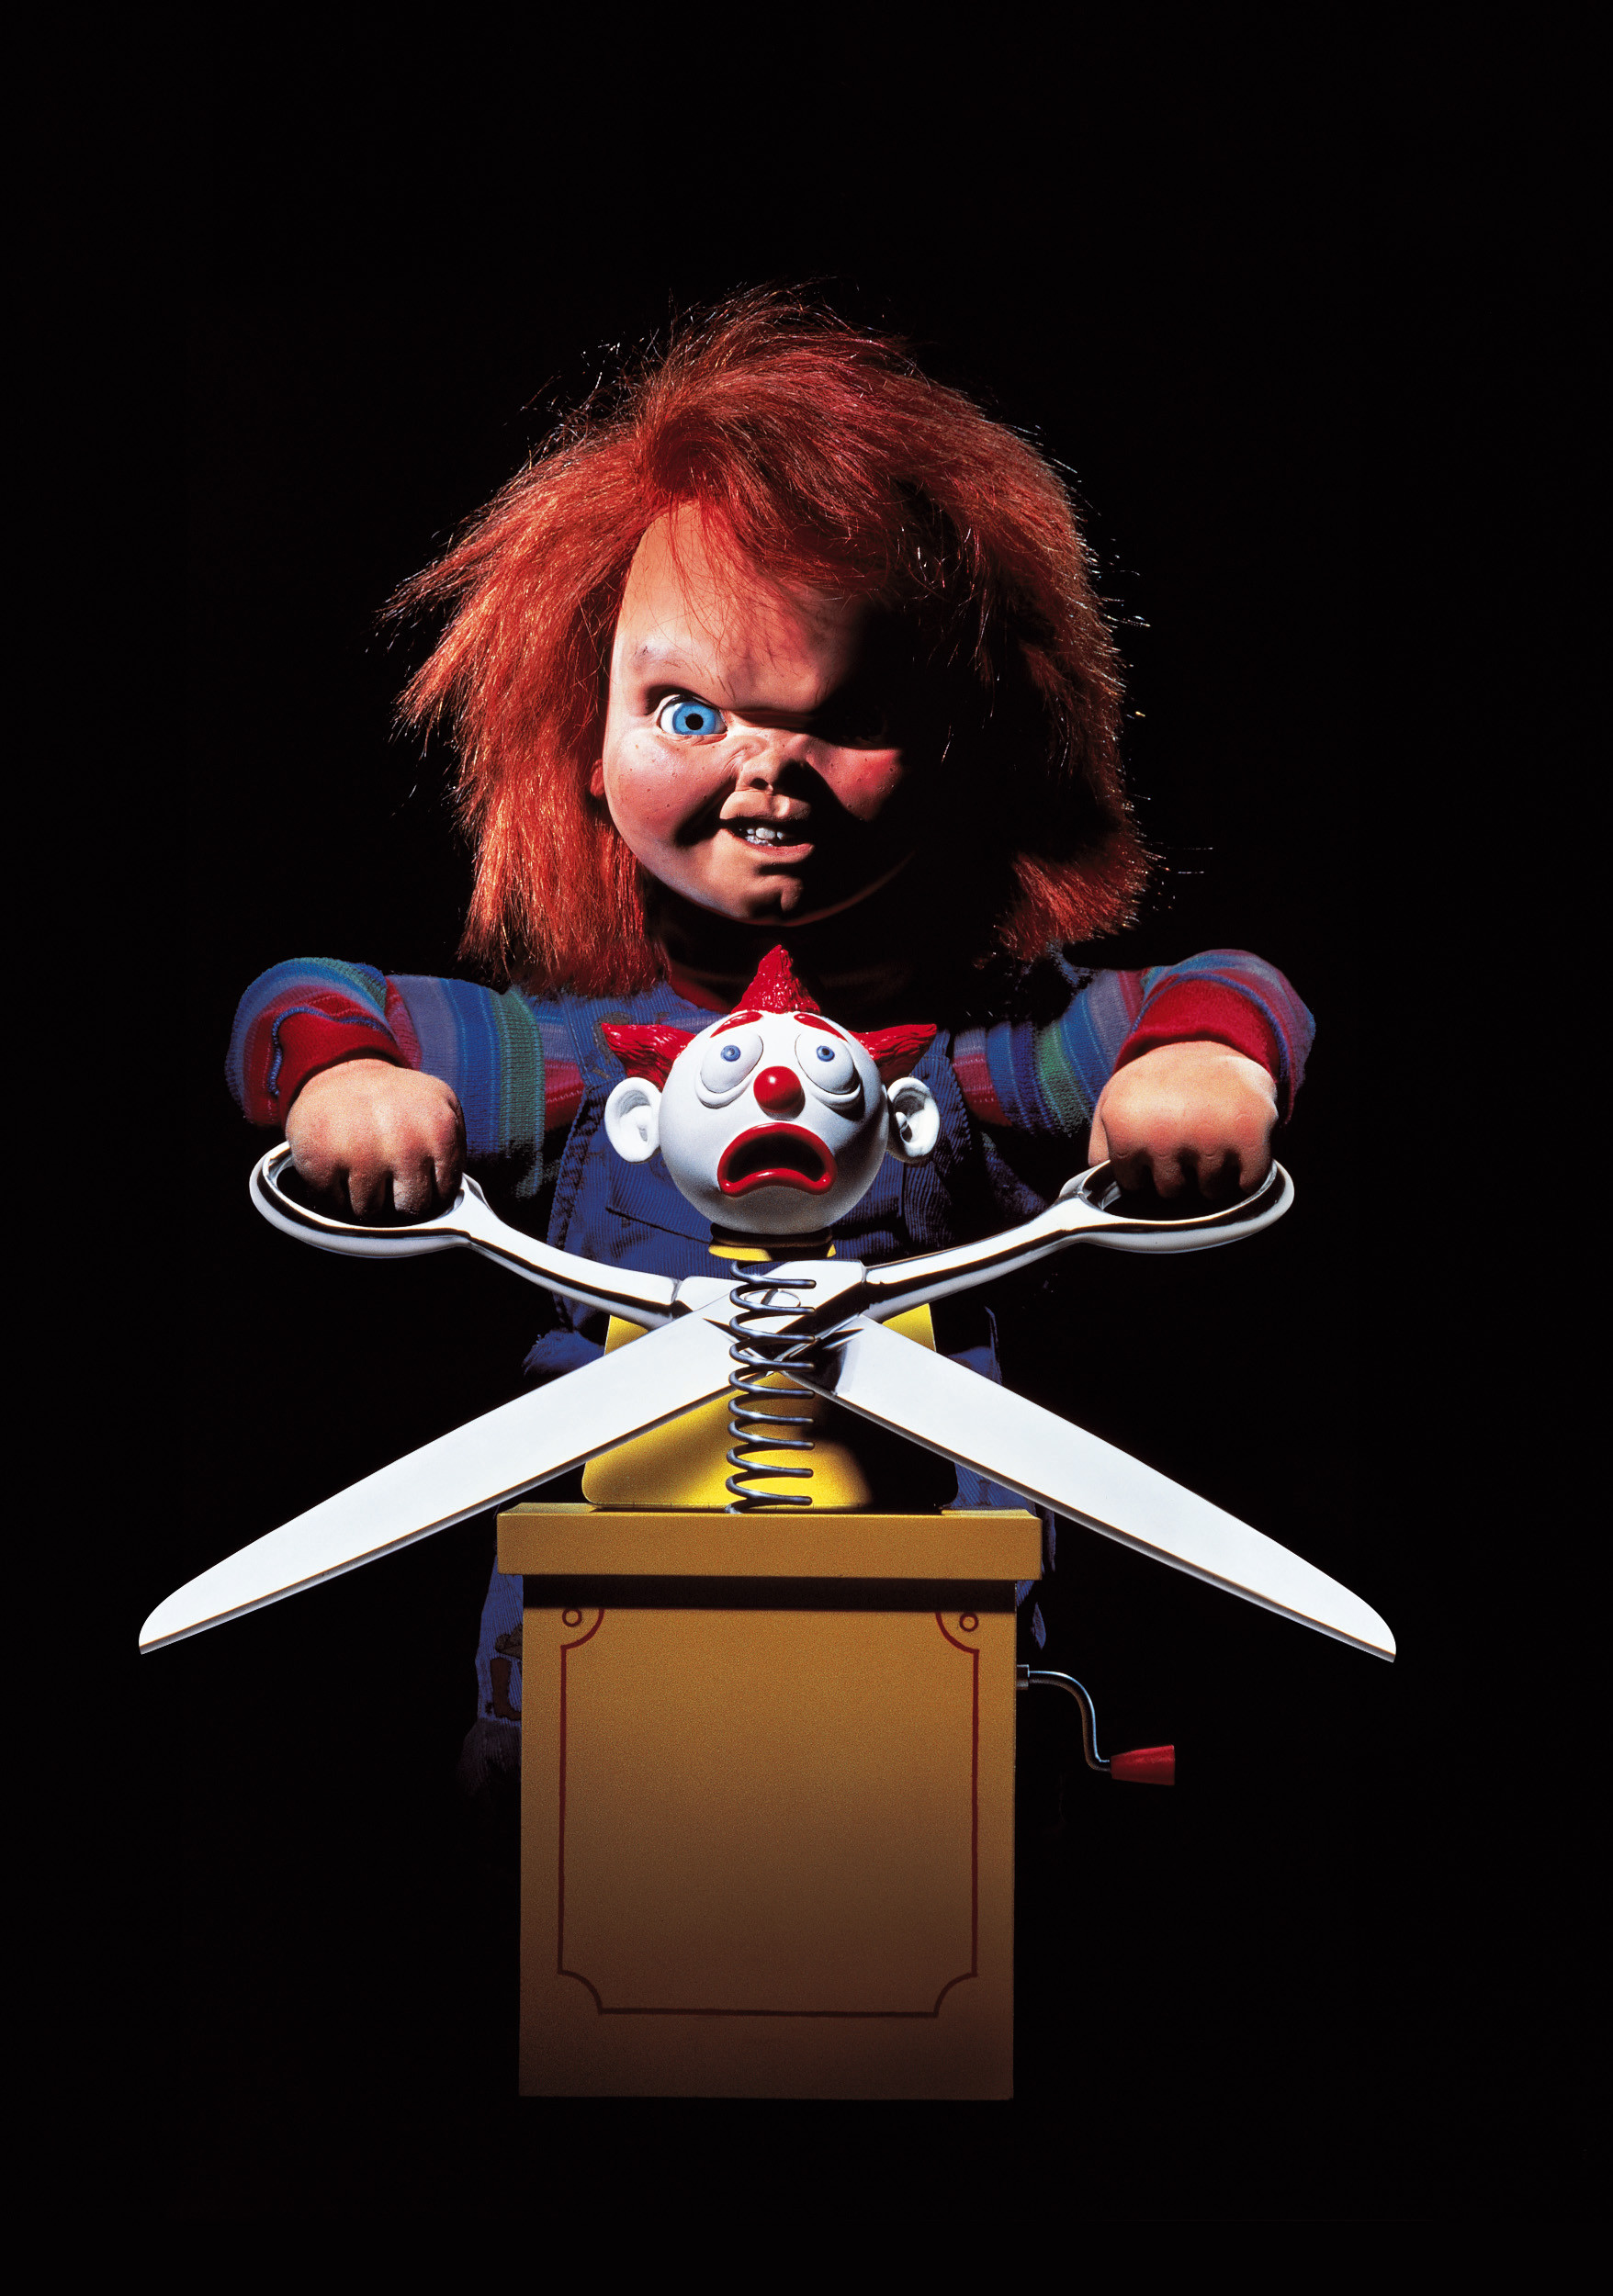 1756x2500 Chucky-childs-play-25672971-1756-2500.png (1756×